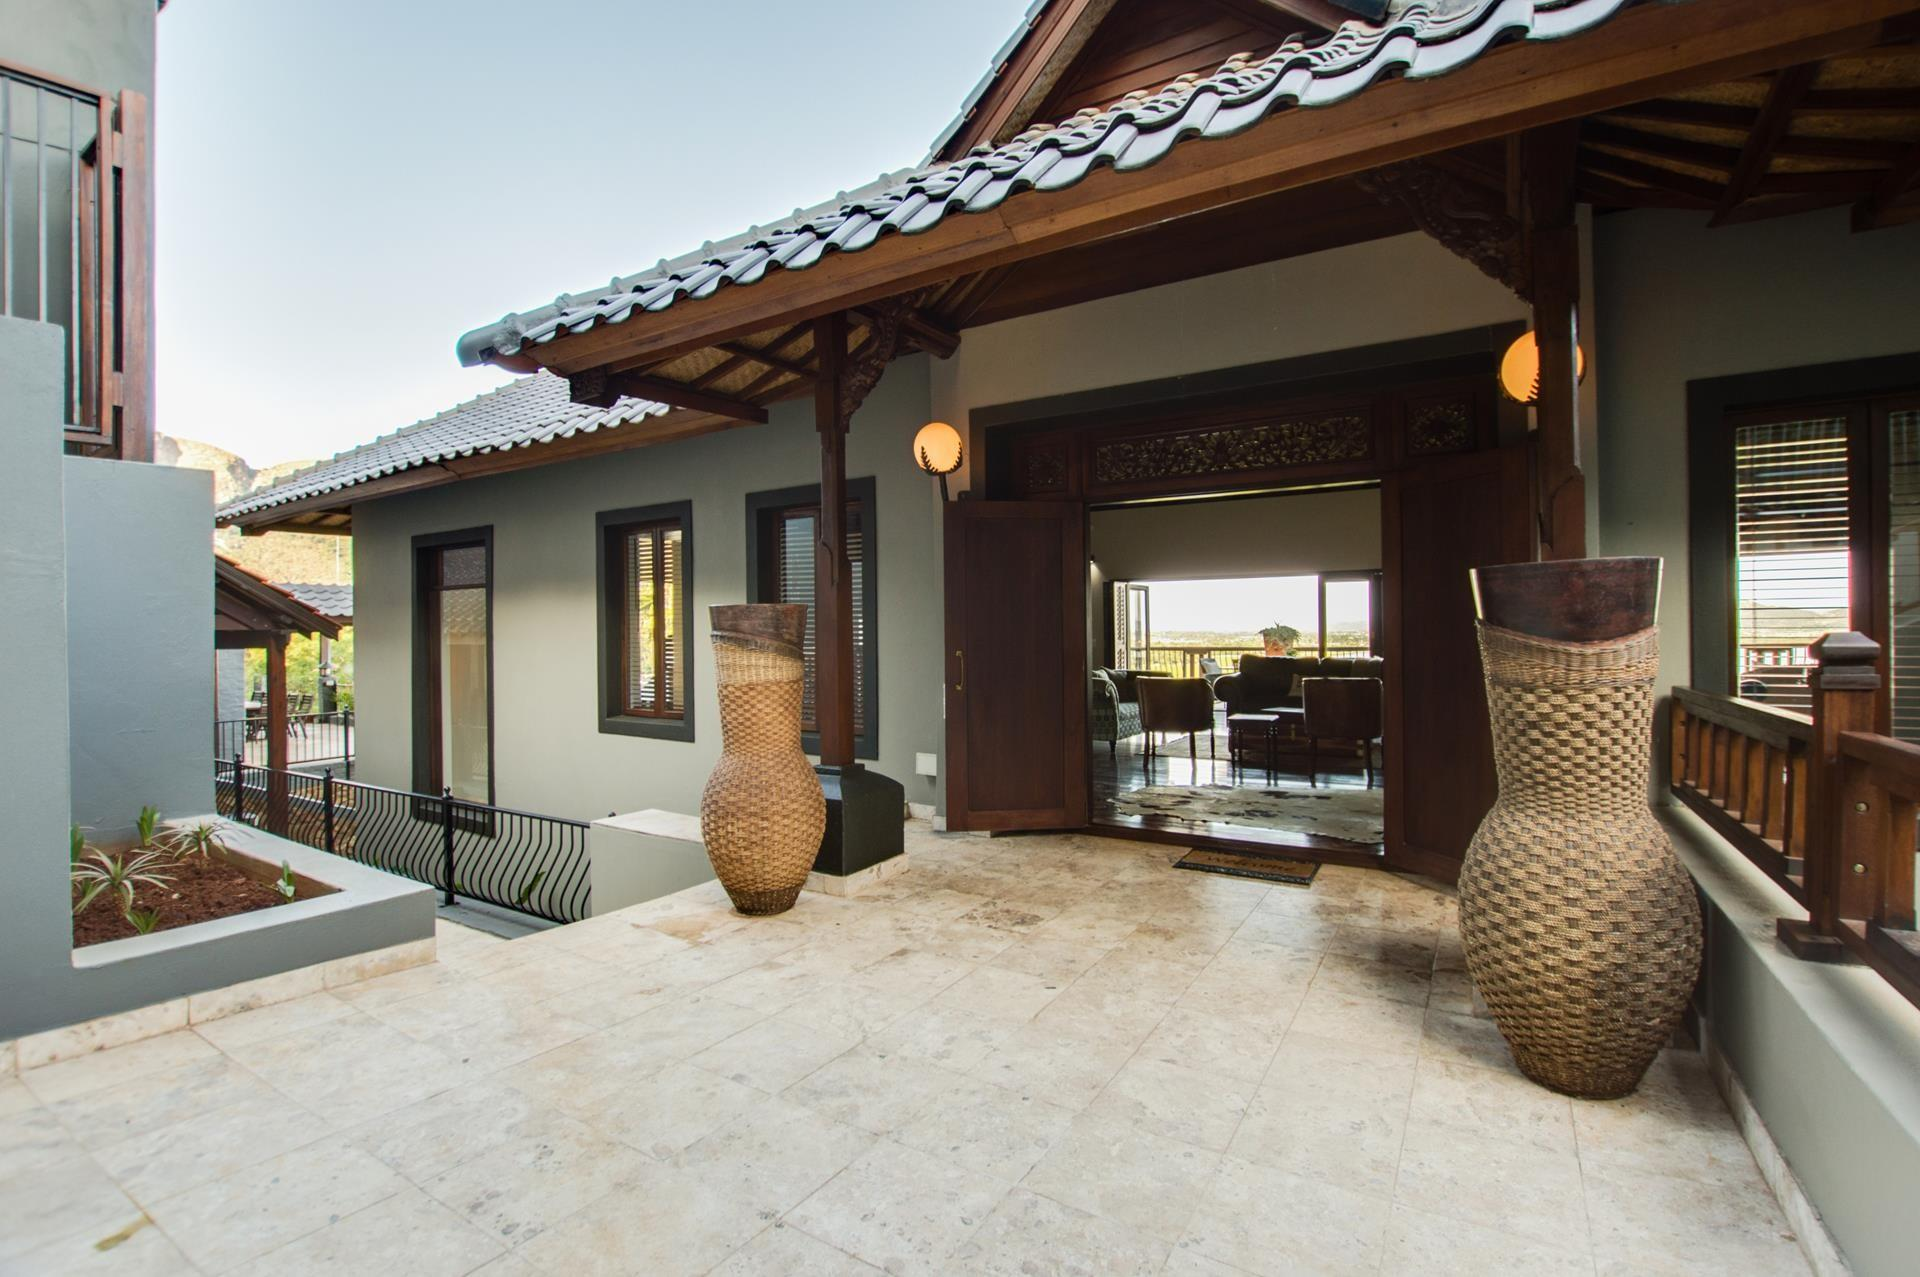 5 Bedroom House For Sale in Kosmos